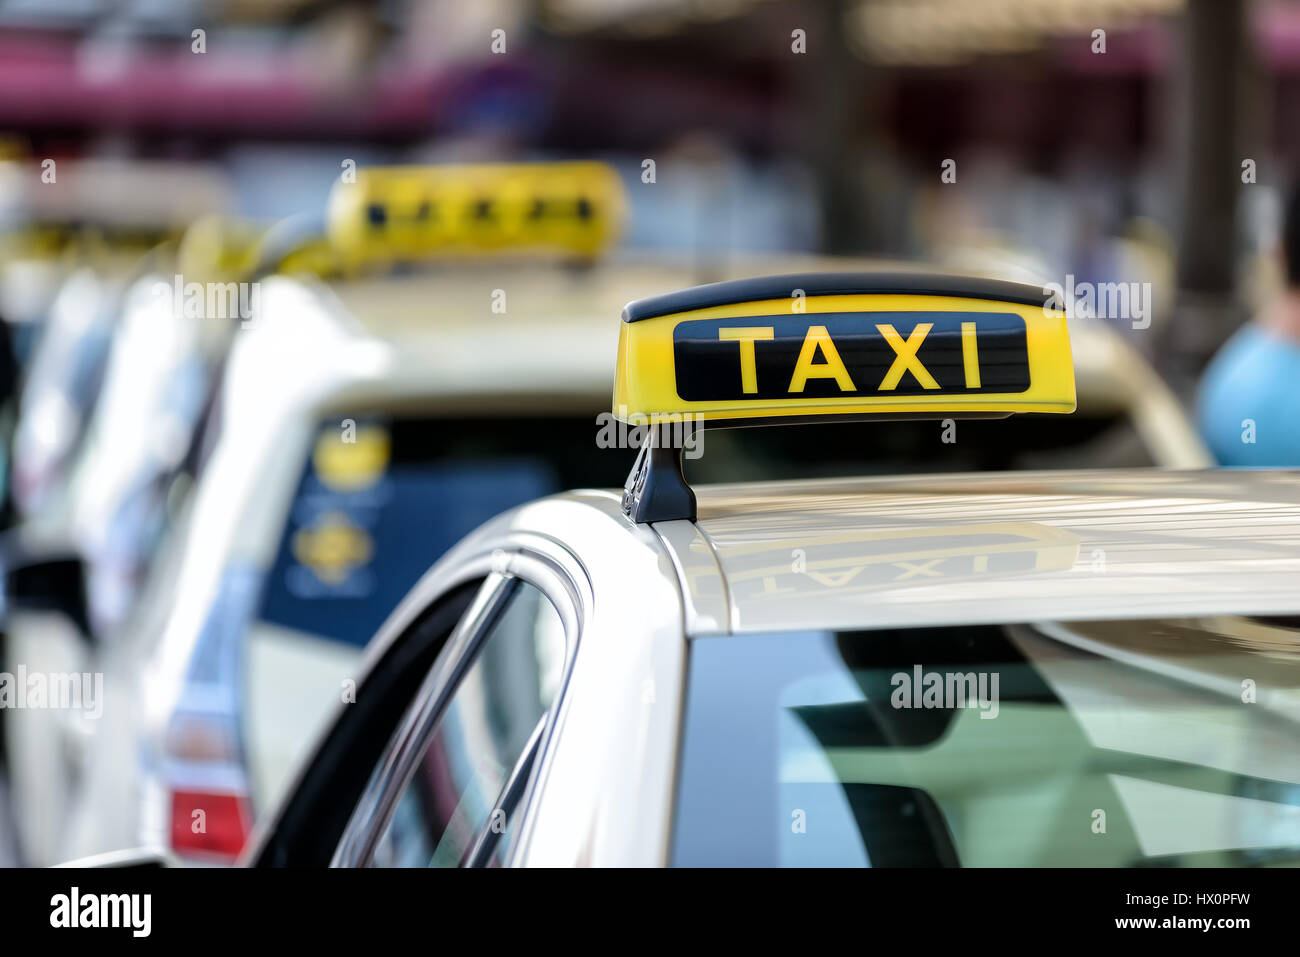 waiting taxis - Stock Image